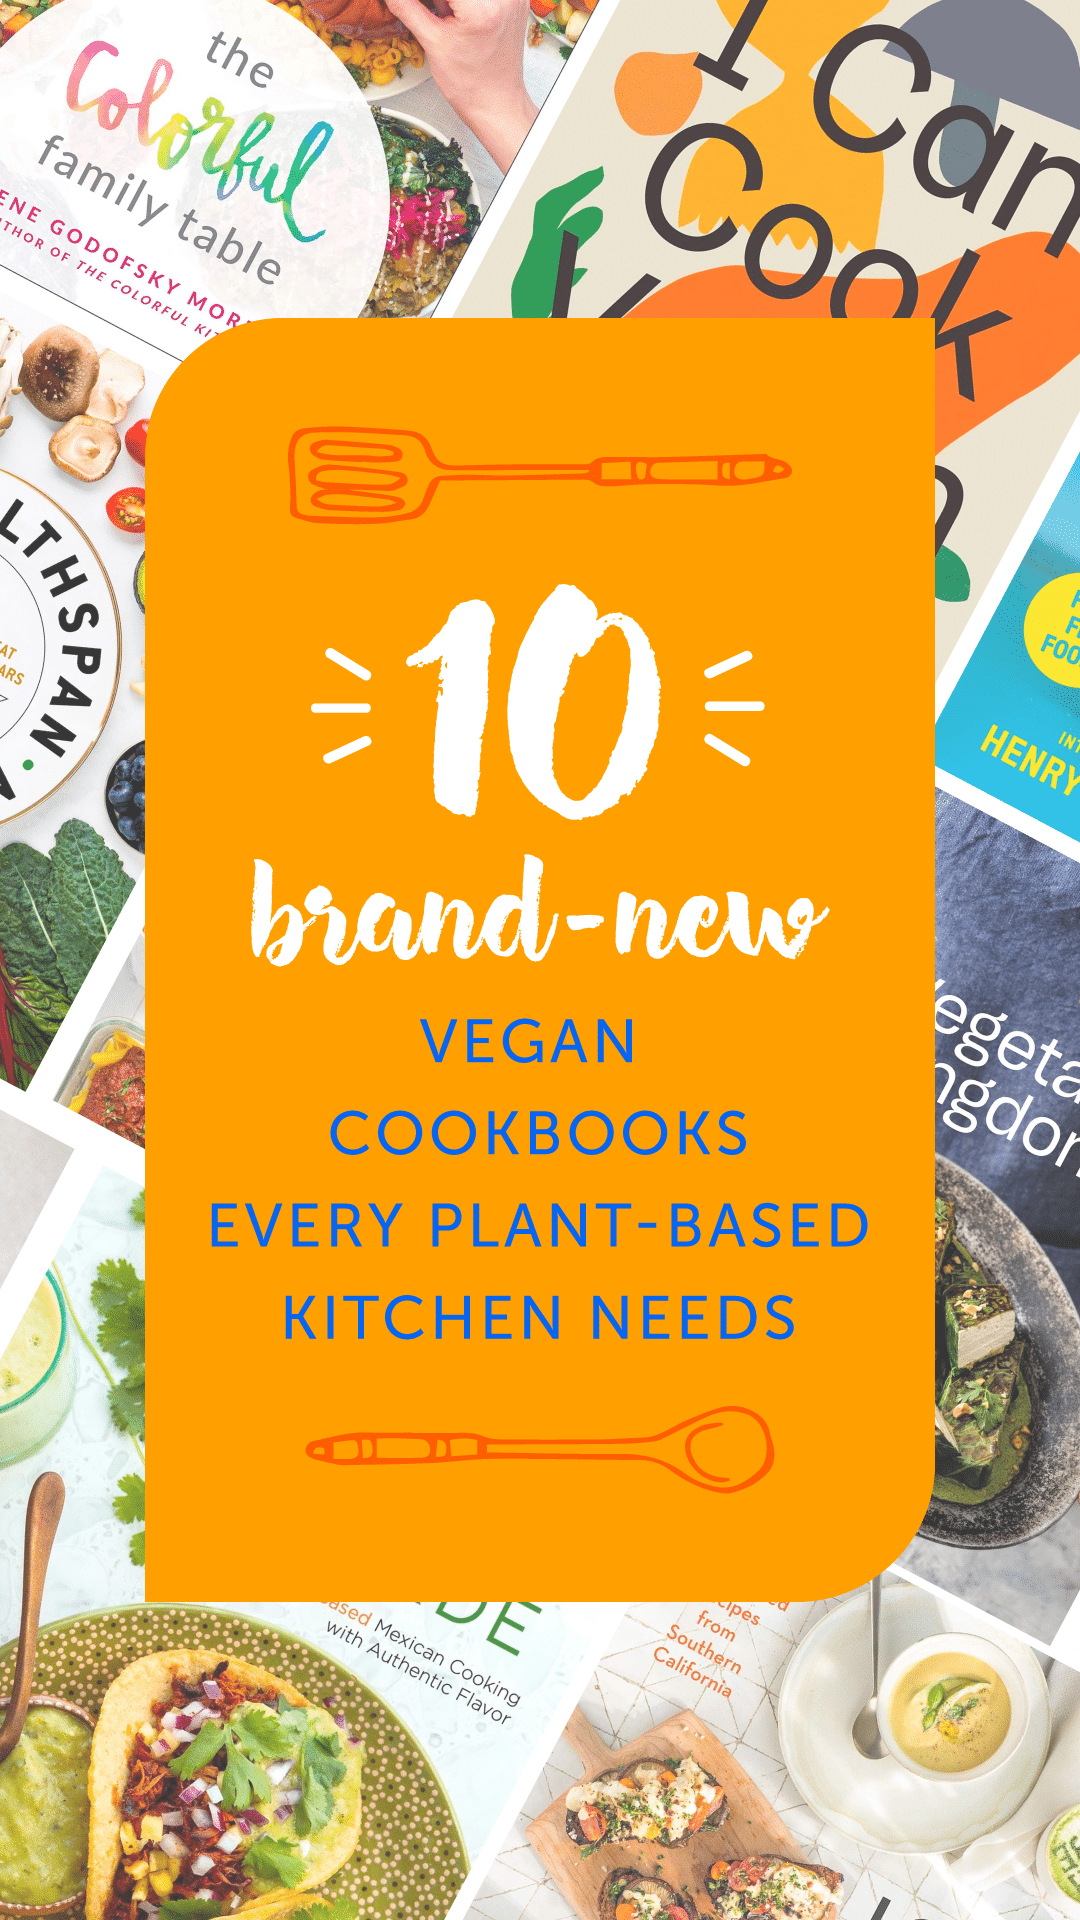 10 Brand-New Vegan Cookbooks Every Plant-Based Kitchen Needs